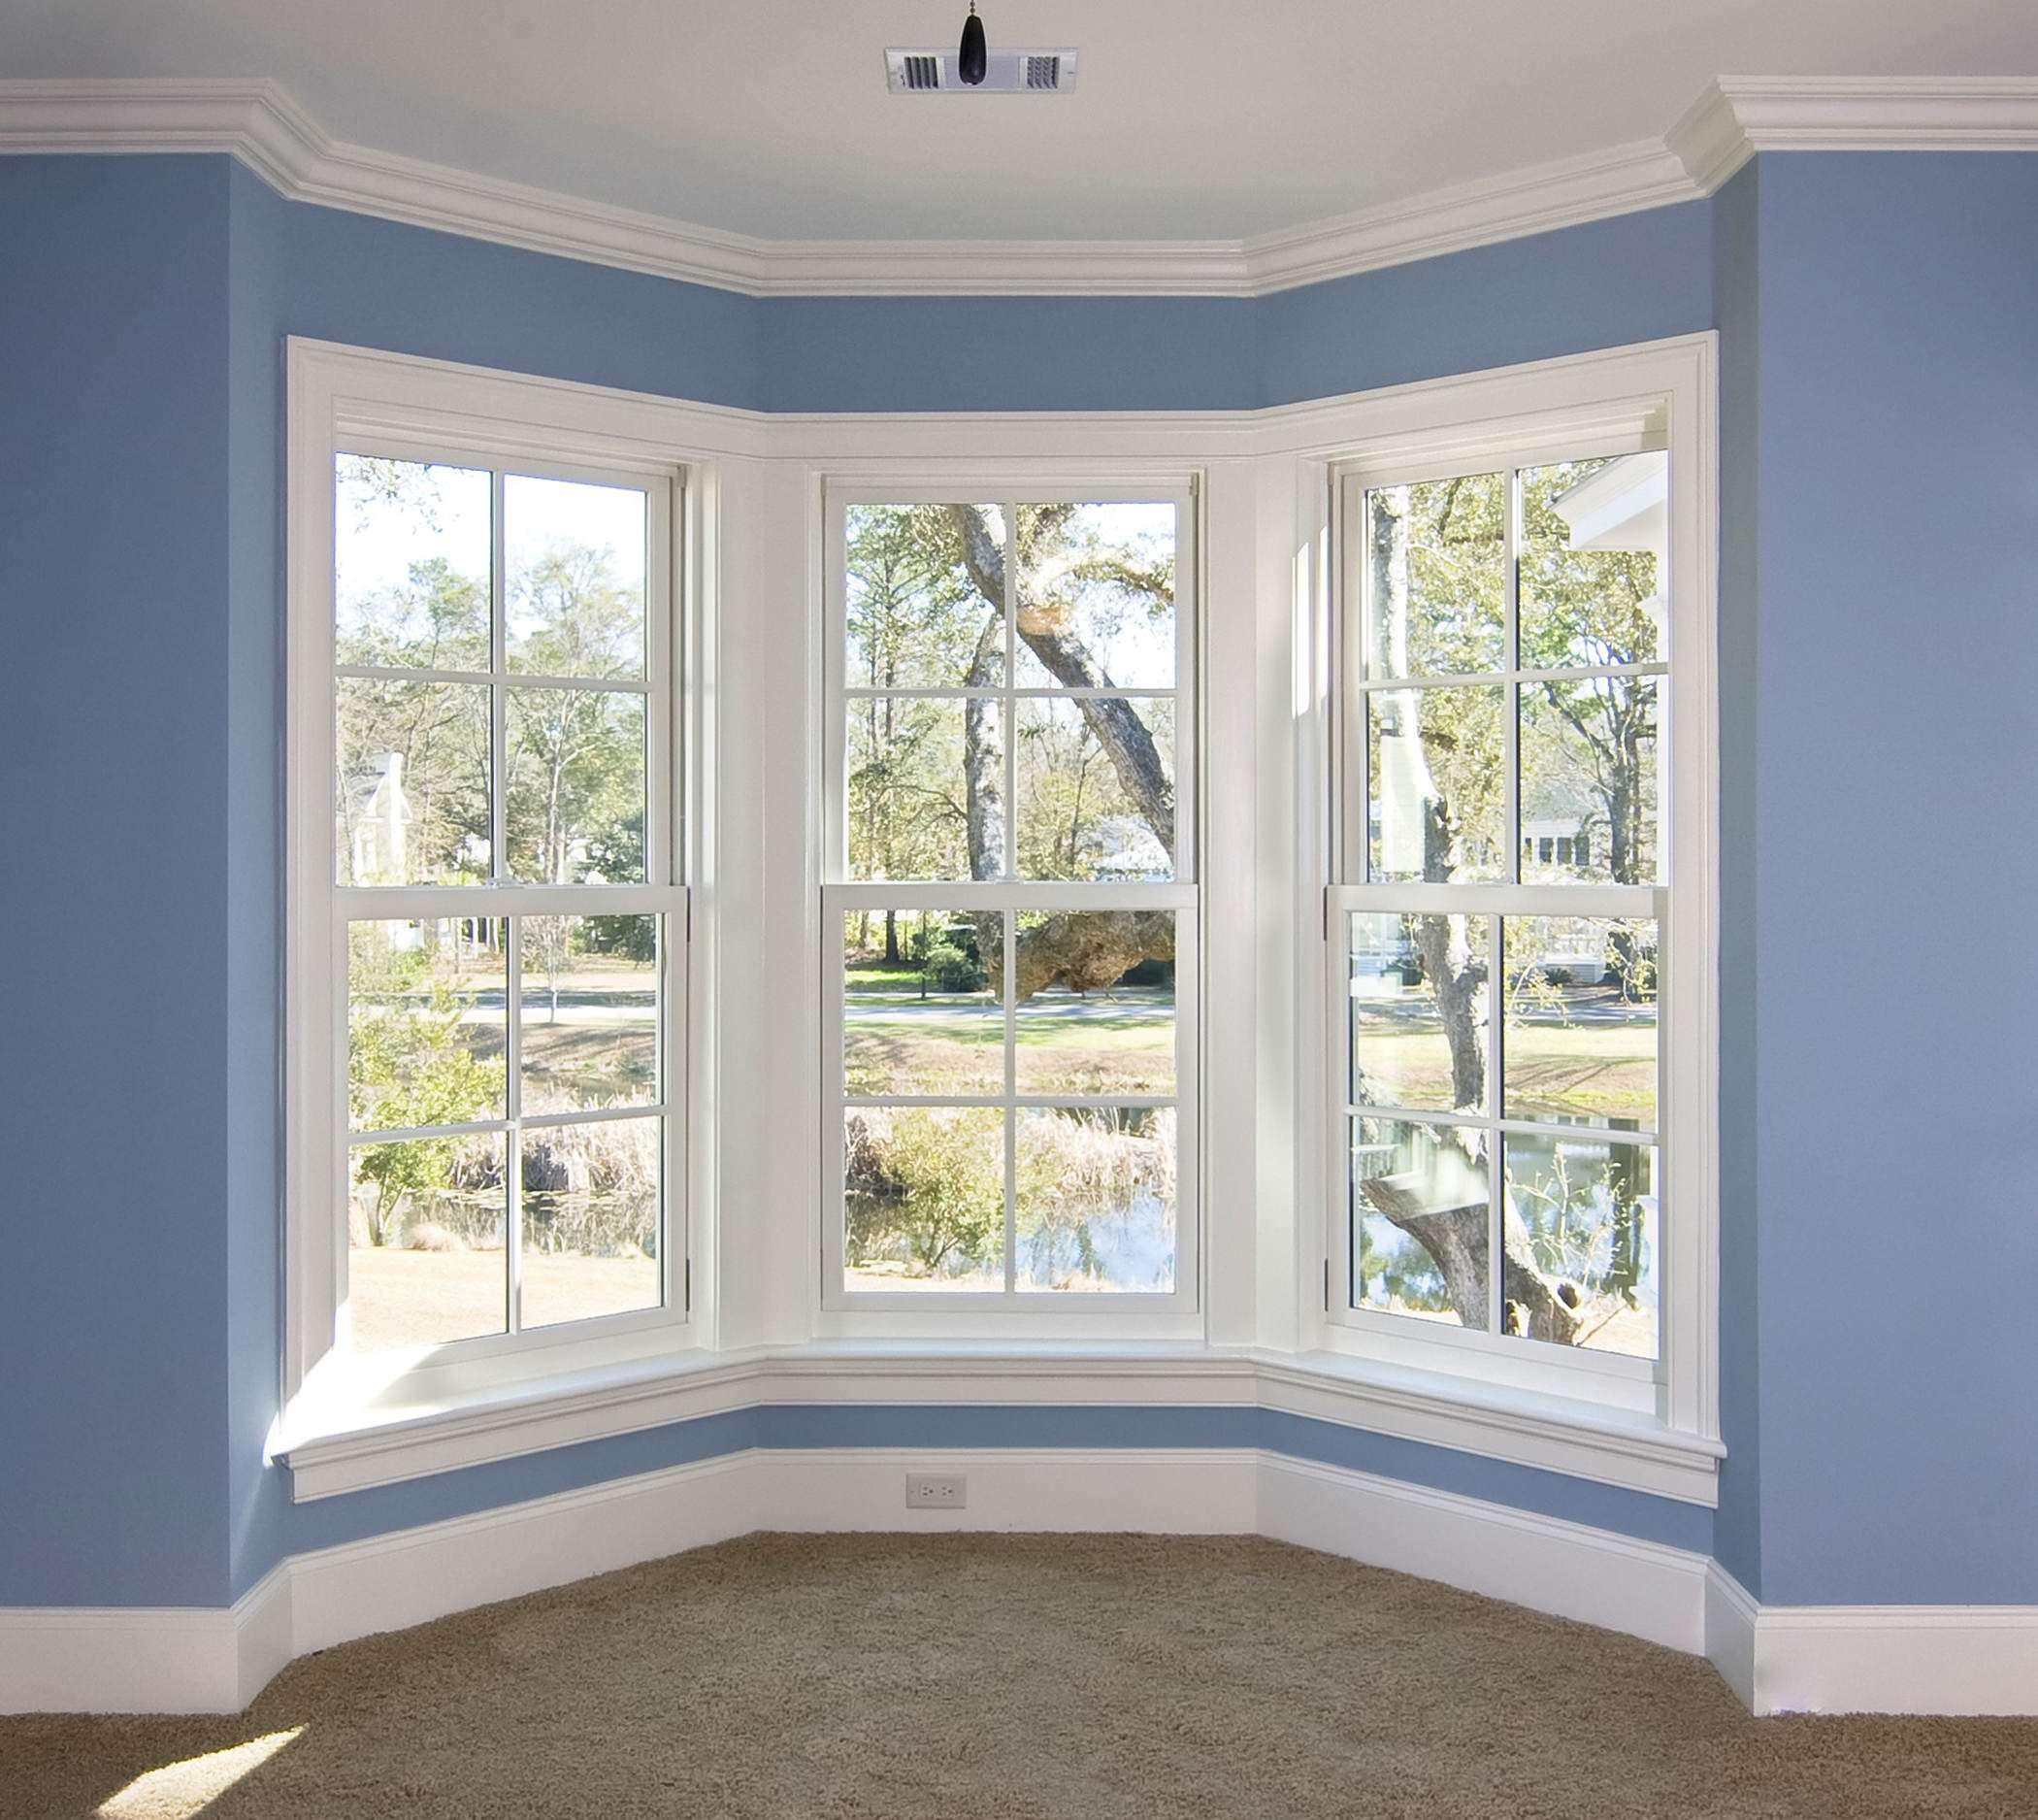 White bay window on a blue wall